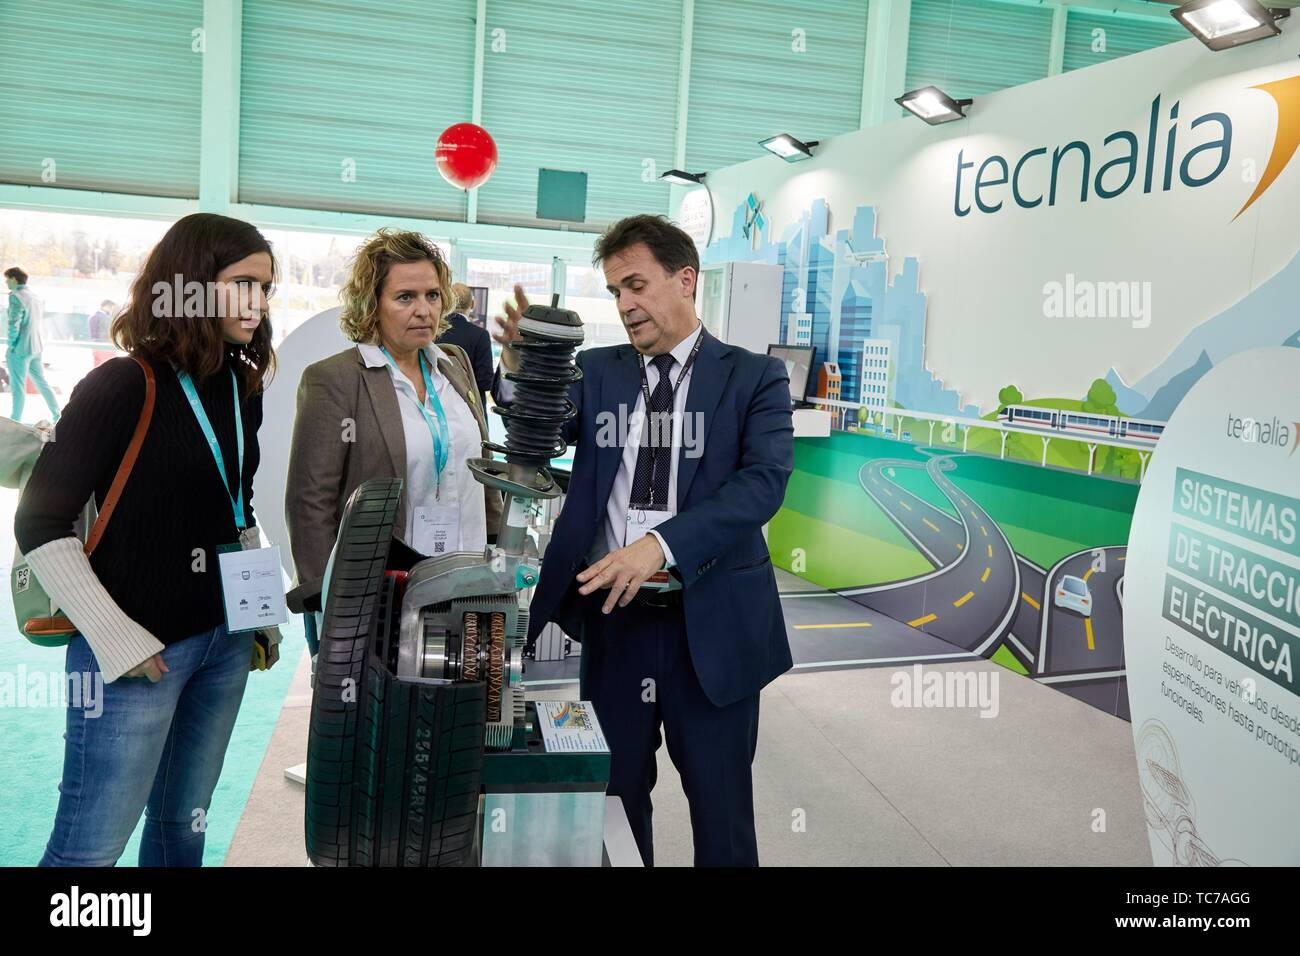 Electric traction system, Tecnalia Research & Innovation,Feria Go Mobility Exhibition, Basque Sustainable Mobility and energy storage industry´s, - Stock Image